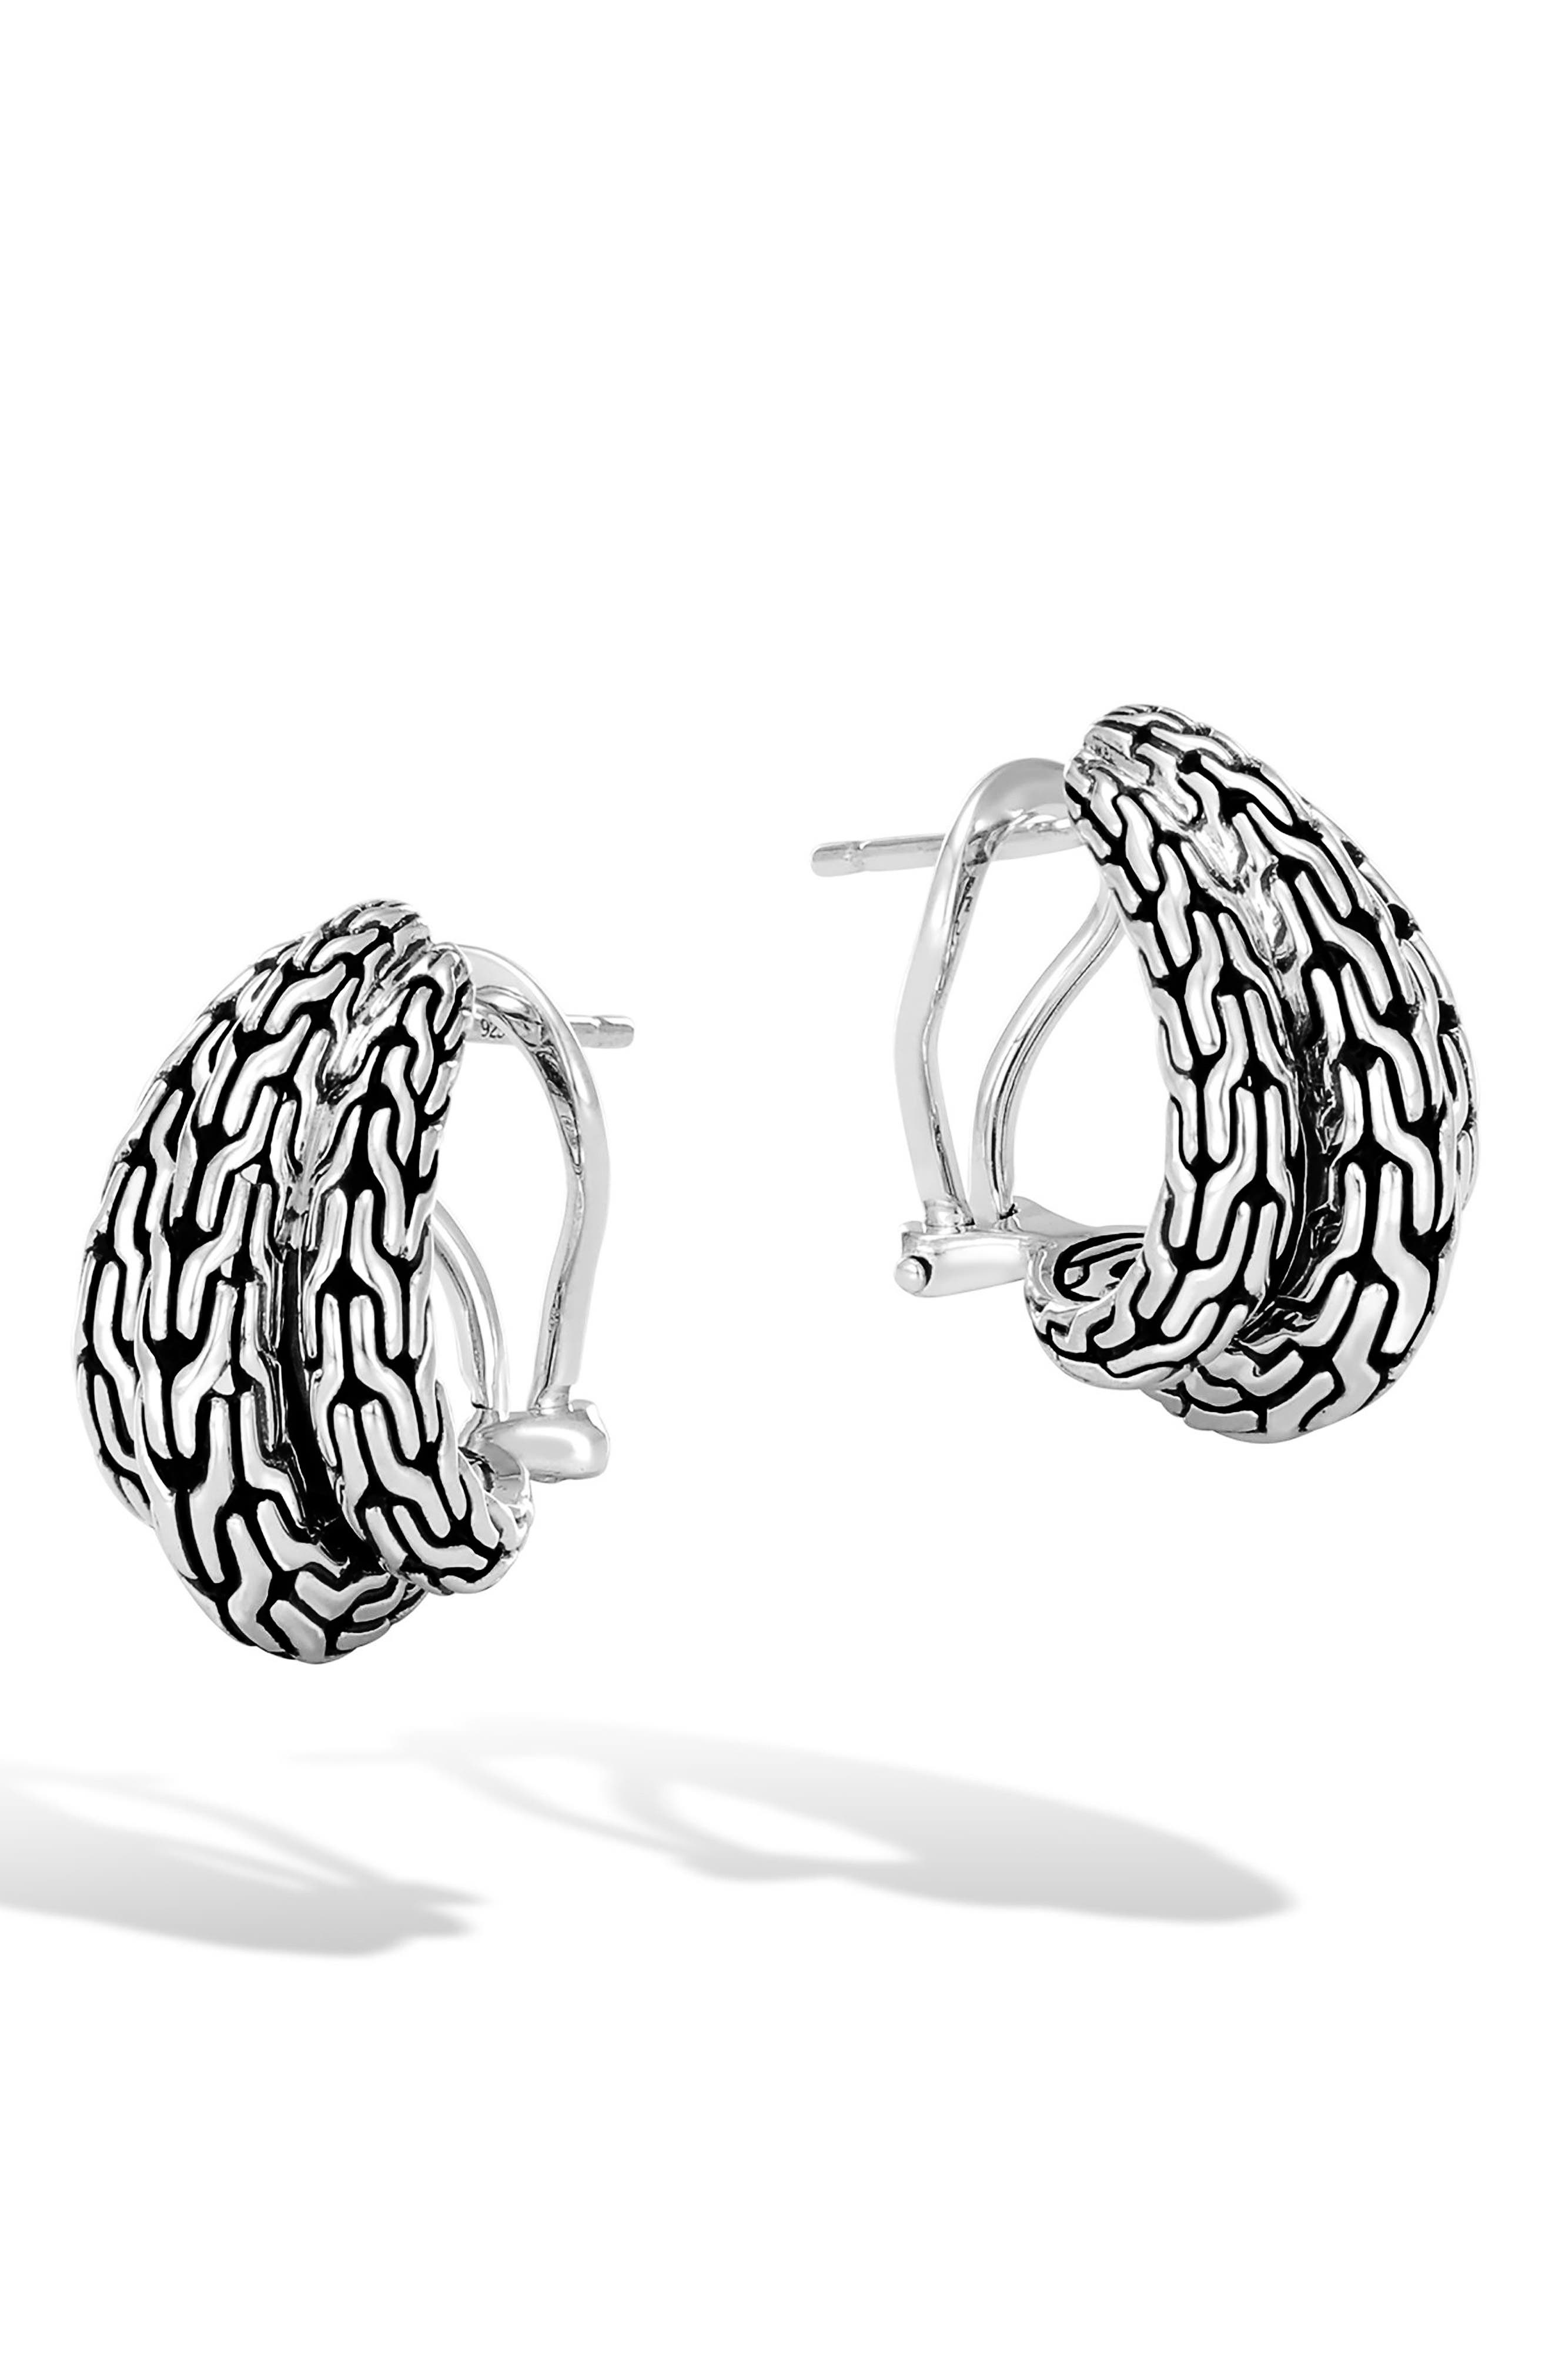 Classic Chain Buddha Belly Earrings,                             Main thumbnail 1, color,                             Silver